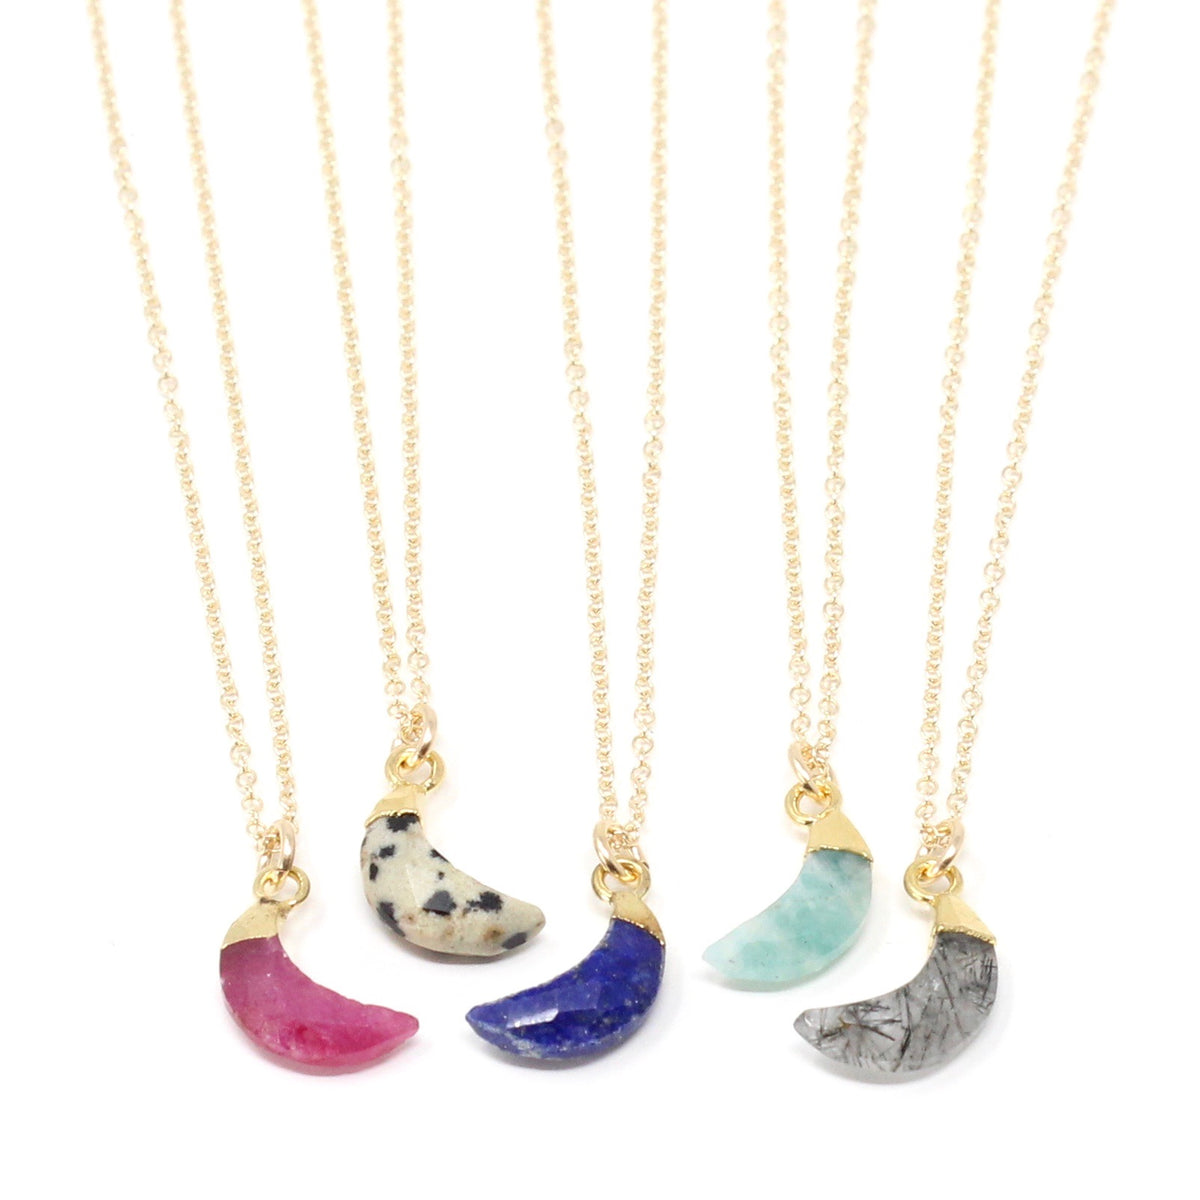 Moon Bezel - XS gemstone necklace